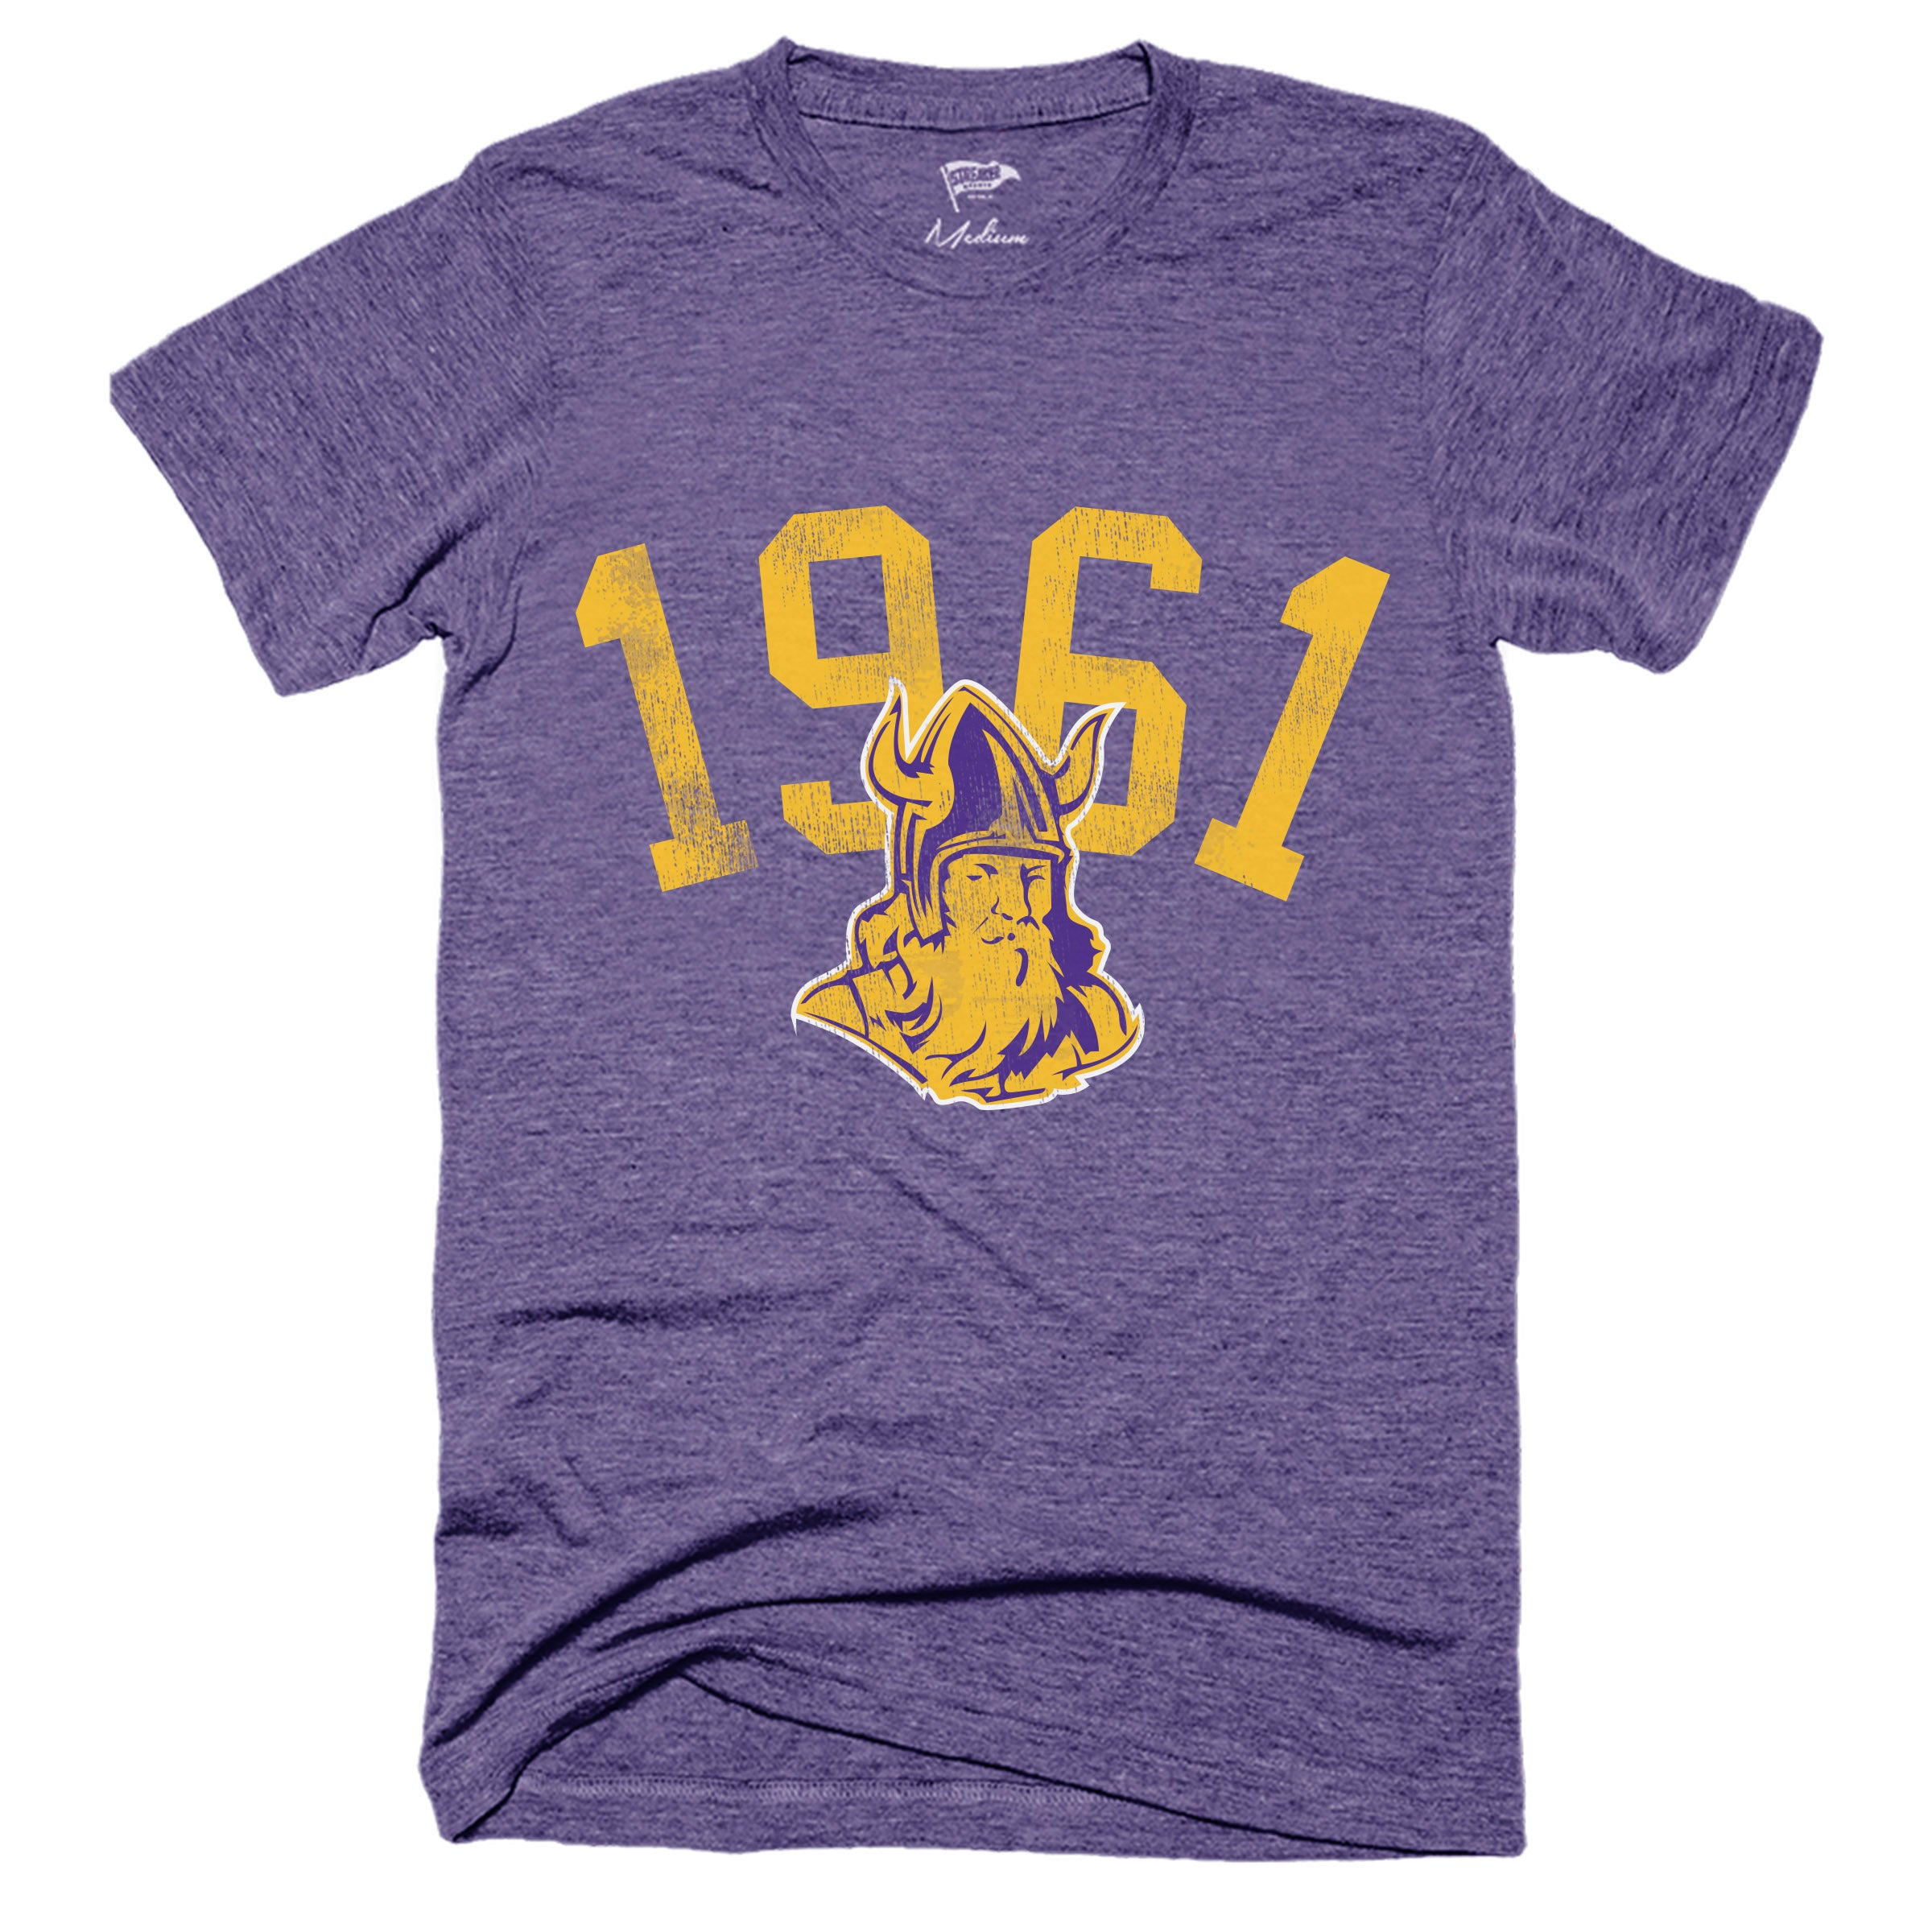 1961 Minnesota Football Founding Year Tee - Streaker Sports